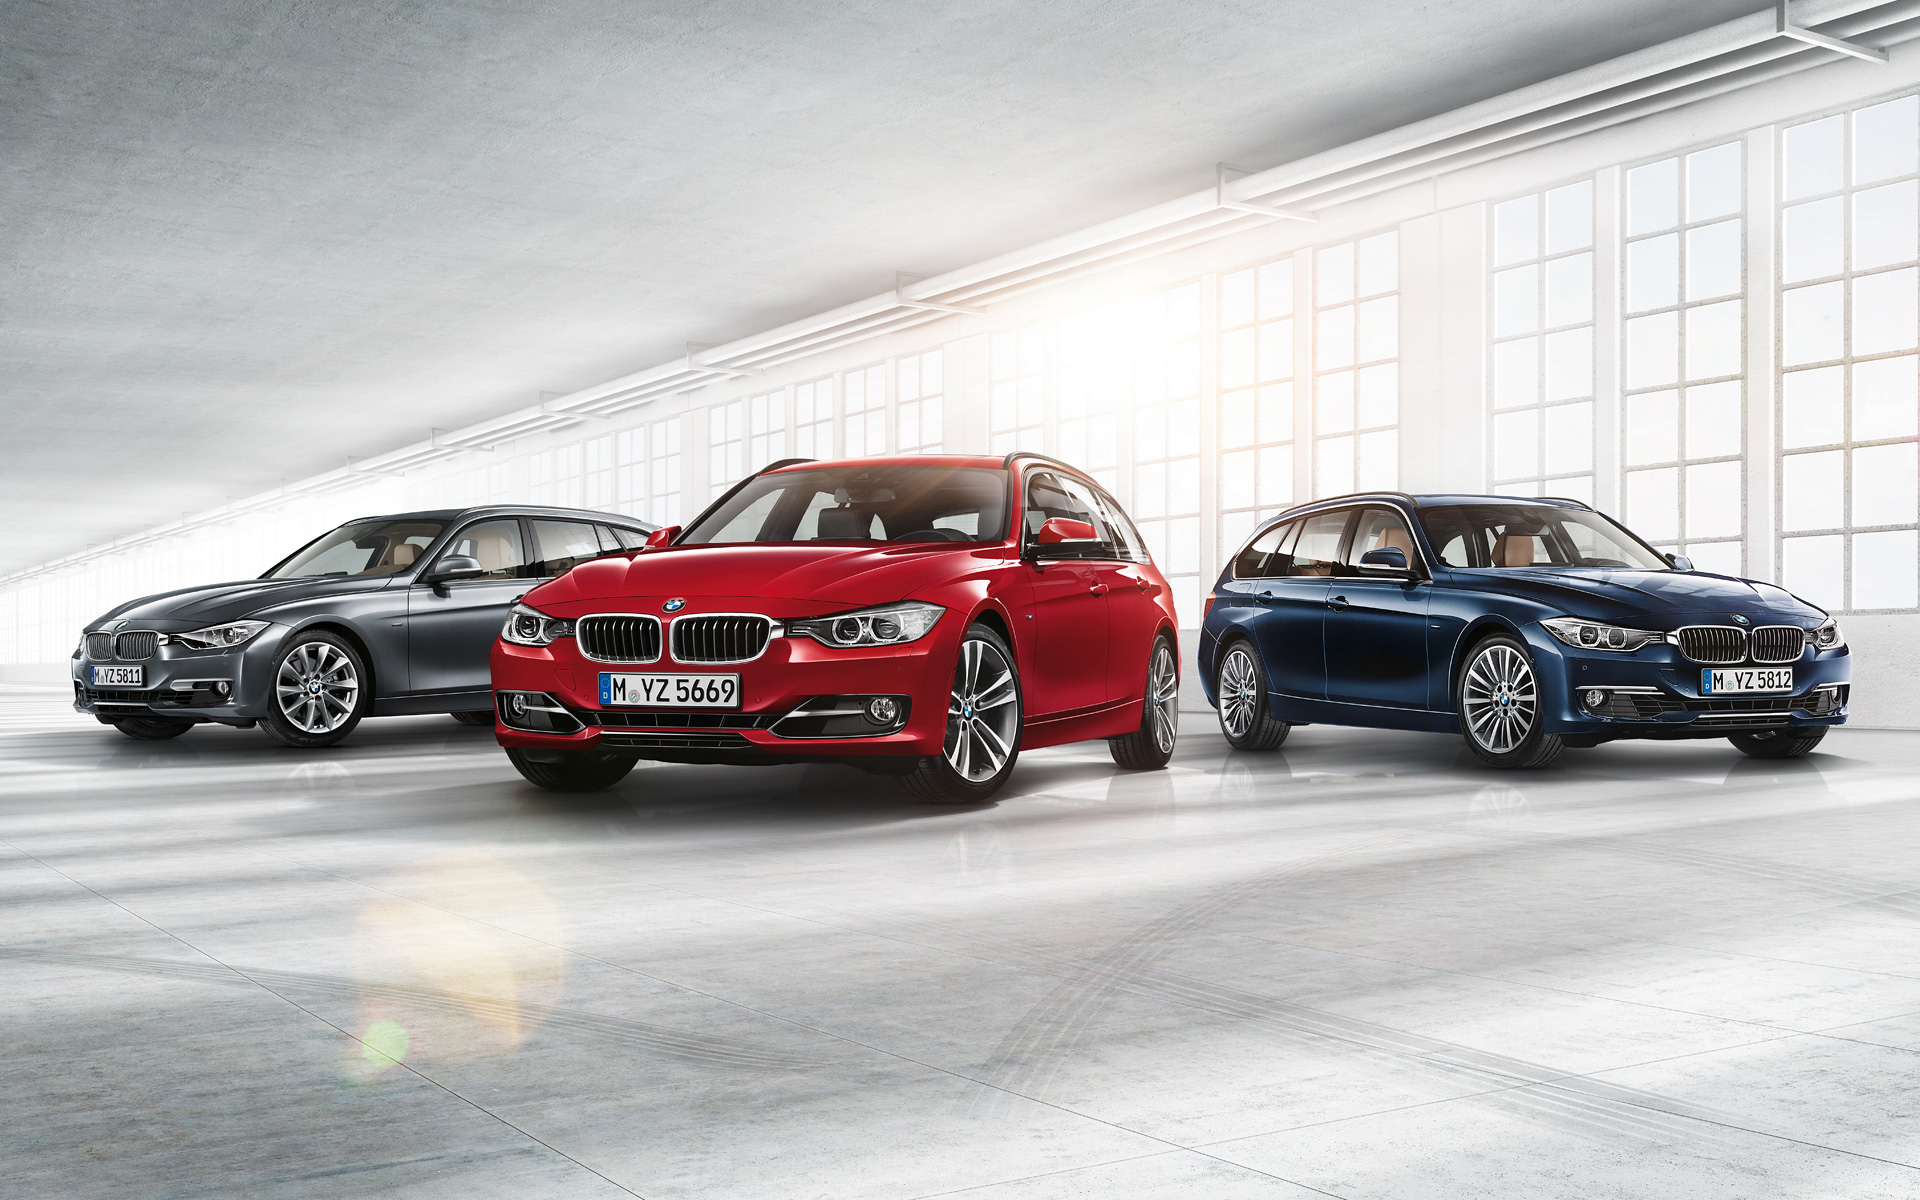 Bmw X Series Differences >> xDrive Coming to BMW 3 Series Touring This March - autoevolution